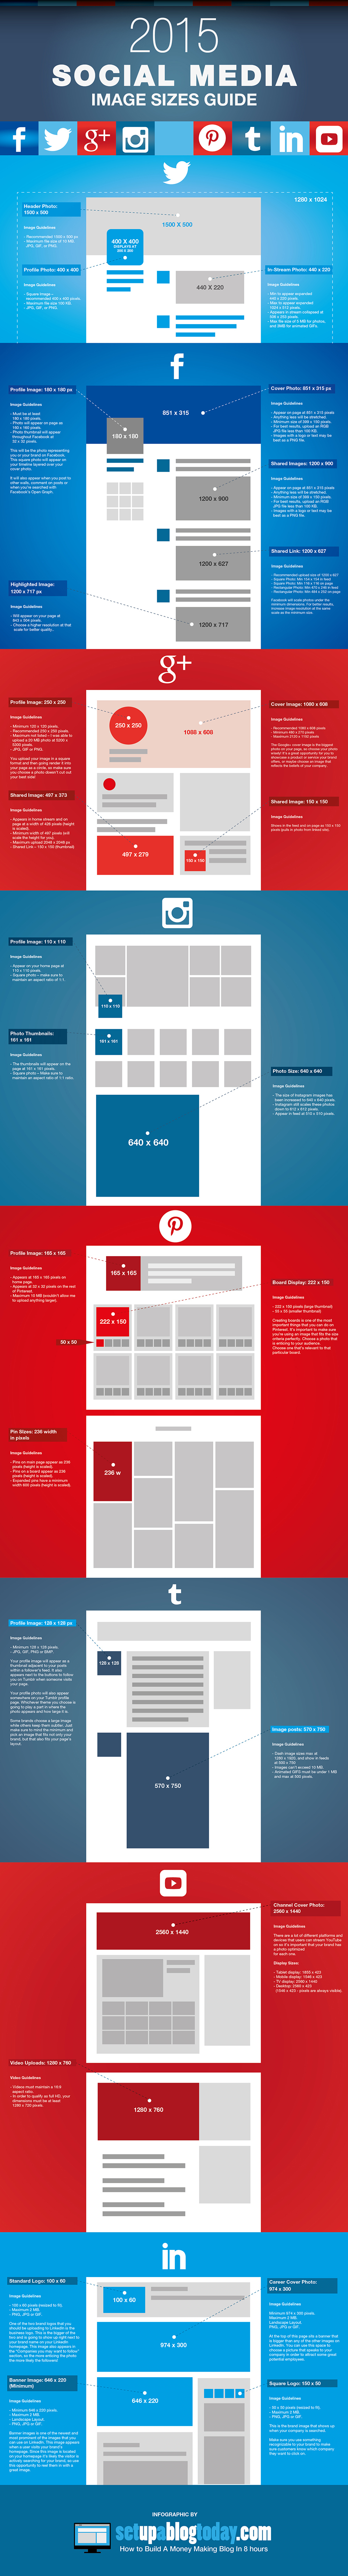 2015-social-media-image-sizes-infographic